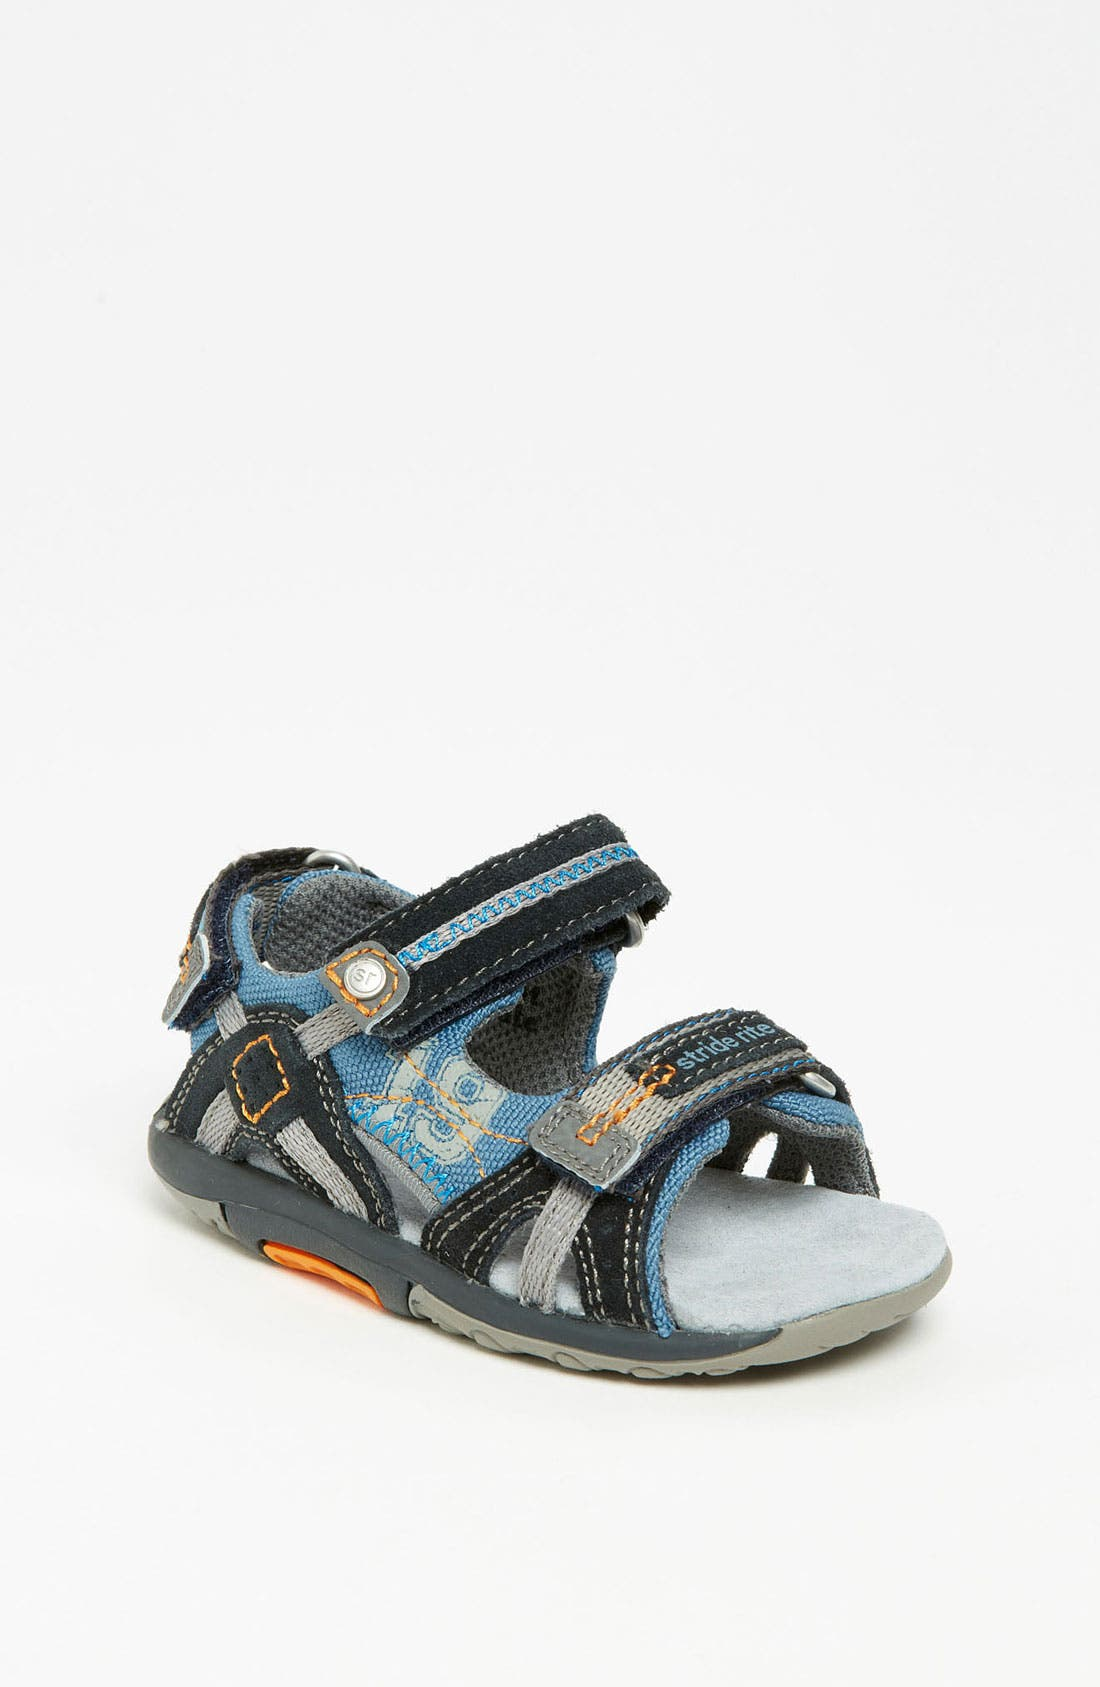 Main Image - Stride Rite 'Scooter' Sandal (Baby, Walker & Toddler)